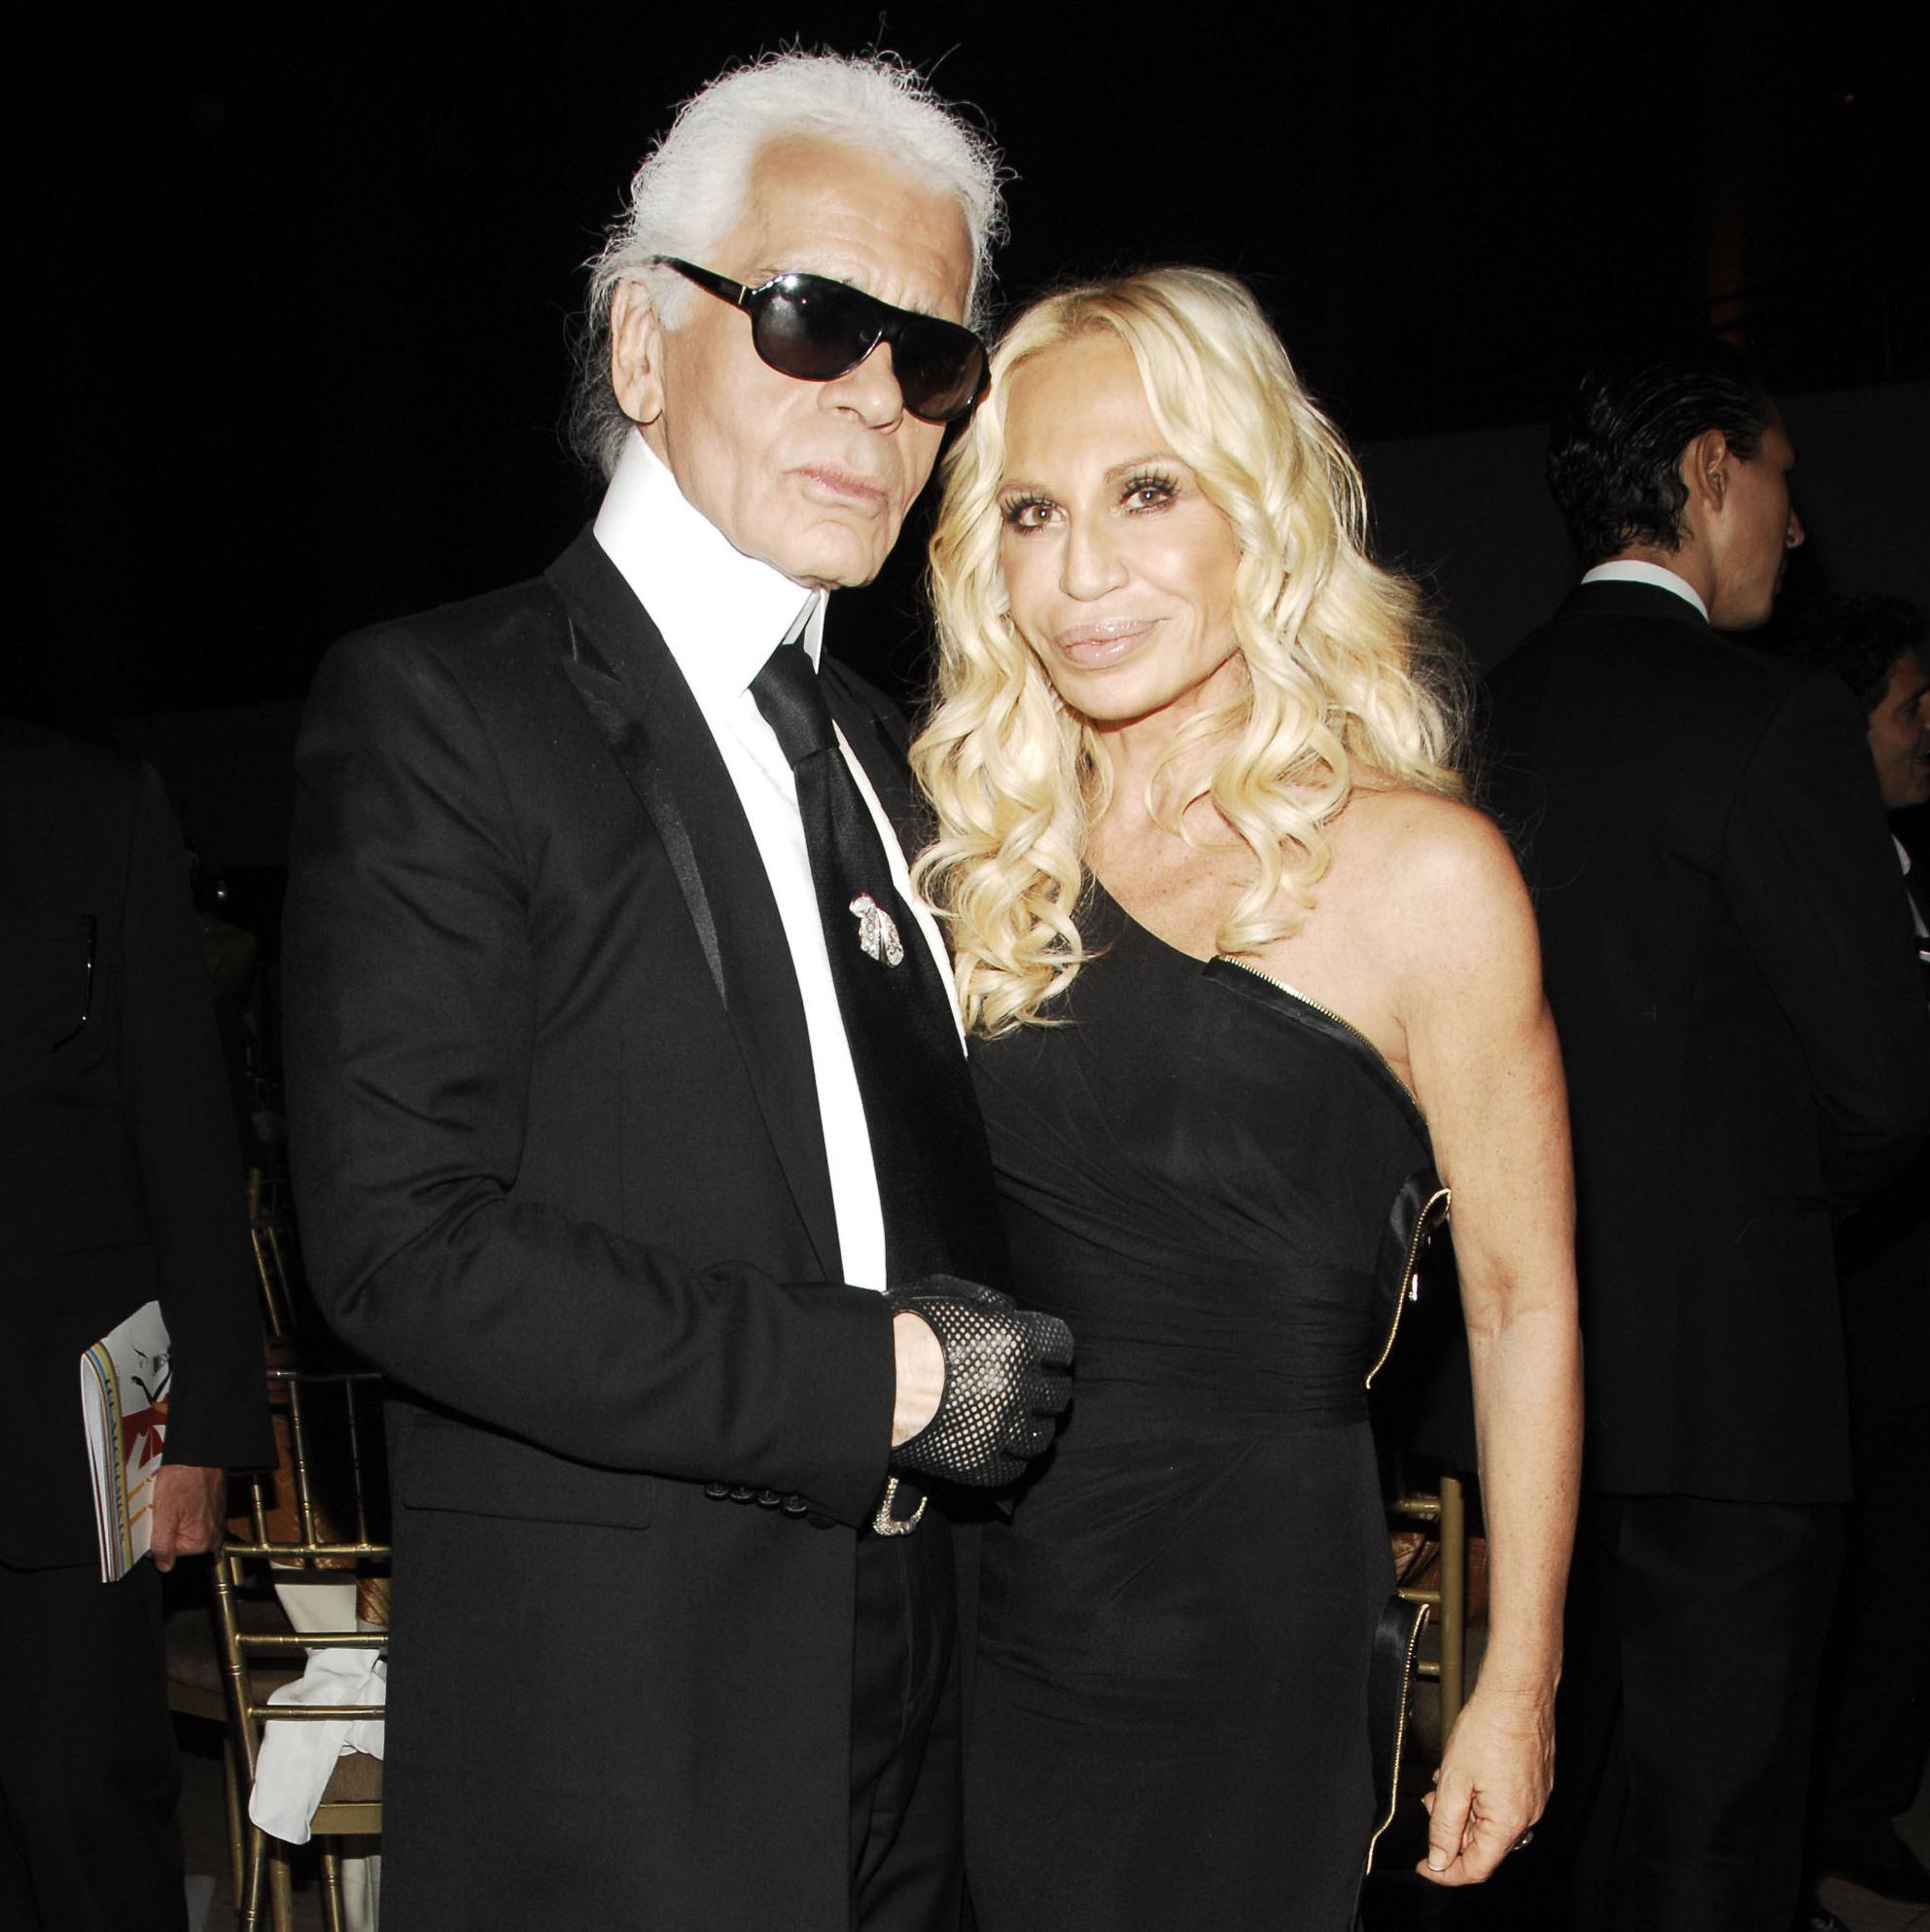 The Fashion World Mourns The Loss of Karl Lagerfeld